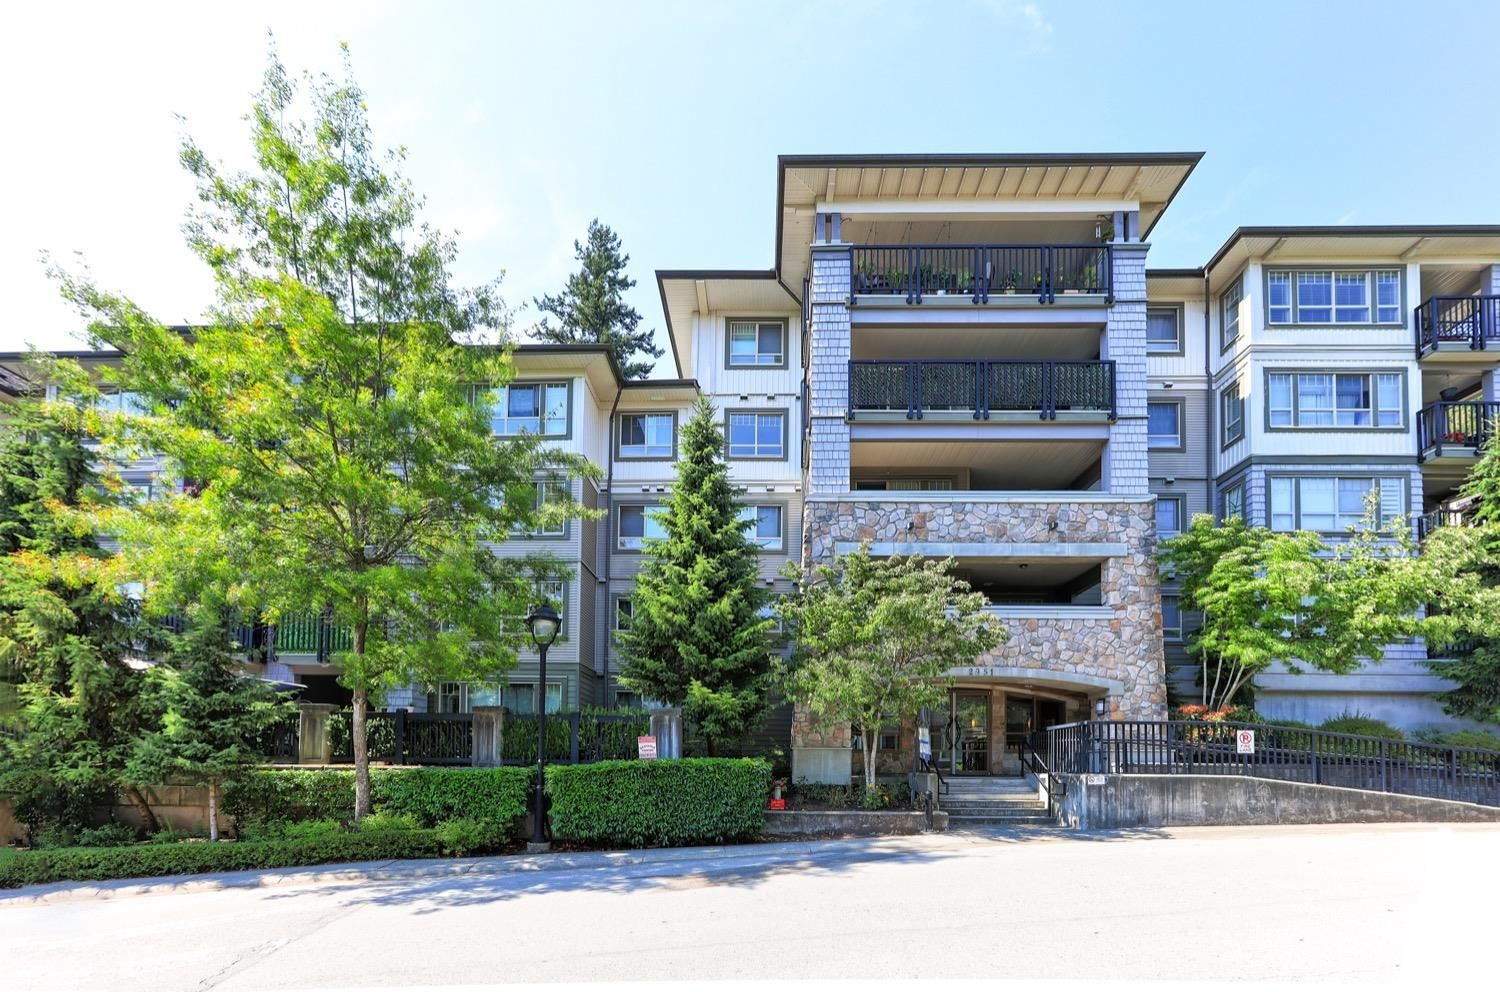 """Main Photo: 108 2951 SILVER SPRINGS Boulevard in Coquitlam: Westwood Plateau Condo for sale in """"TANTULUS"""" : MLS®# R2601029"""